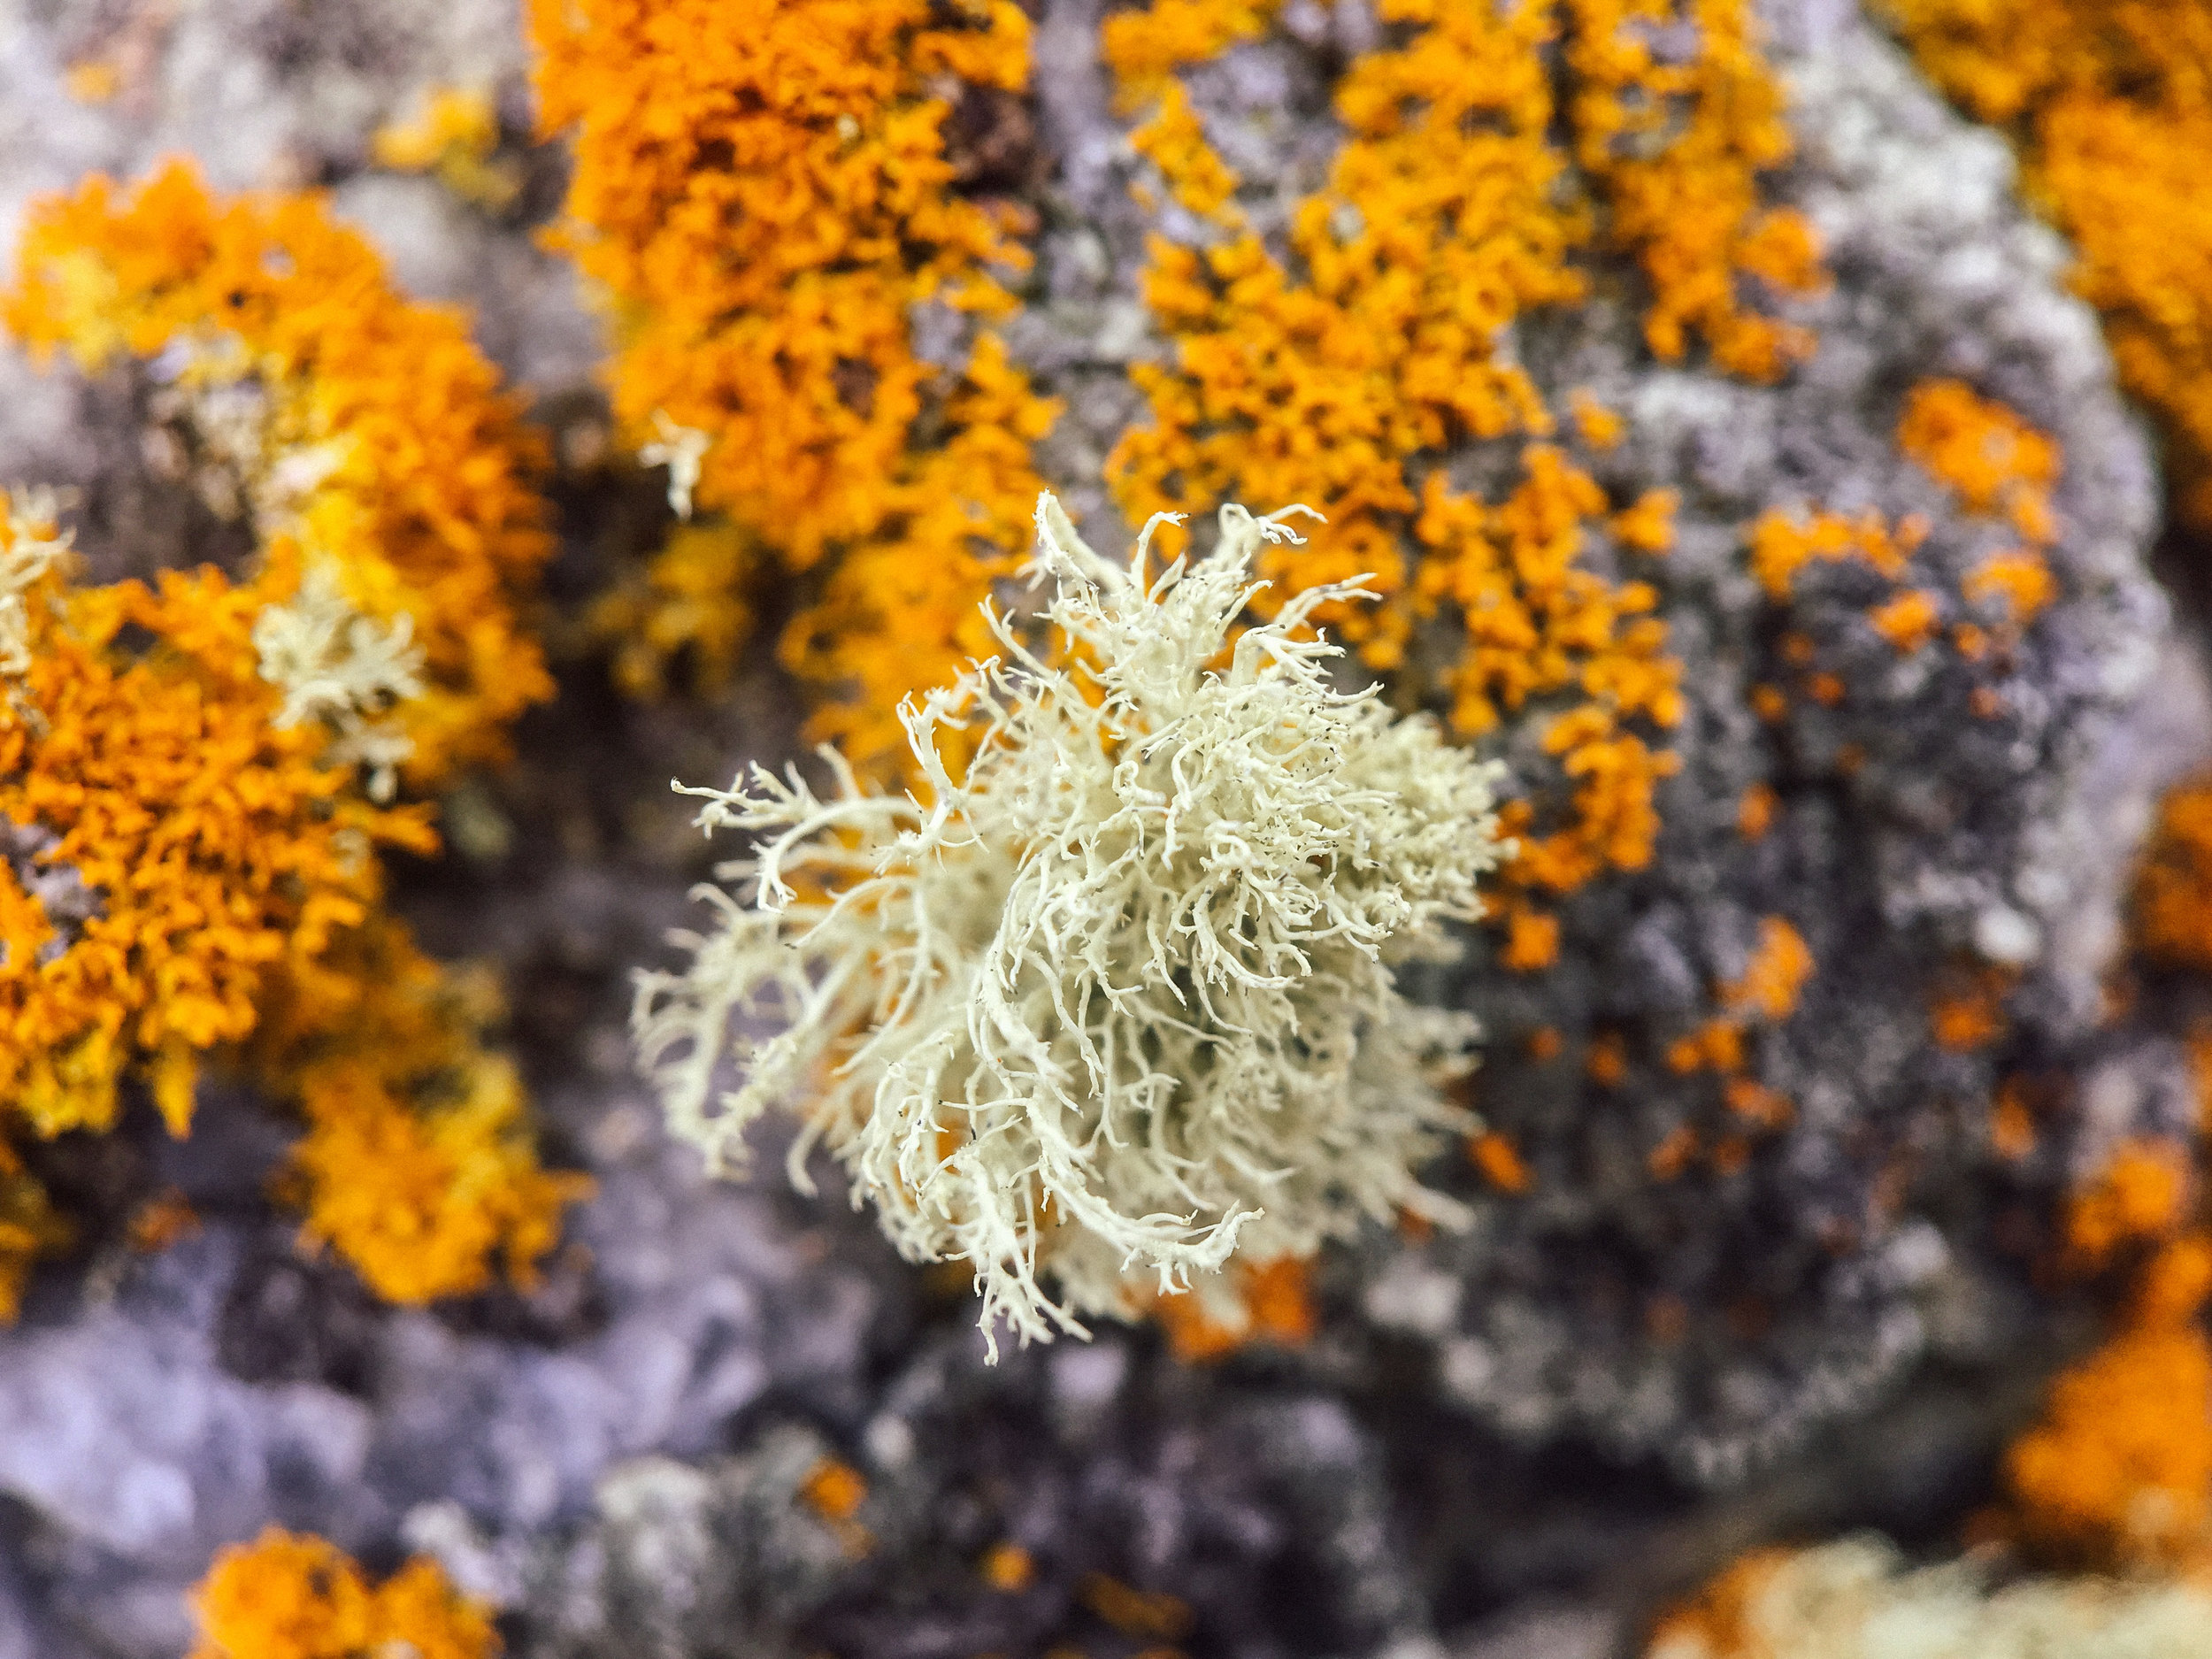 There are at least 20,000 different species worldwide. Here, a type of fruticose lichen.